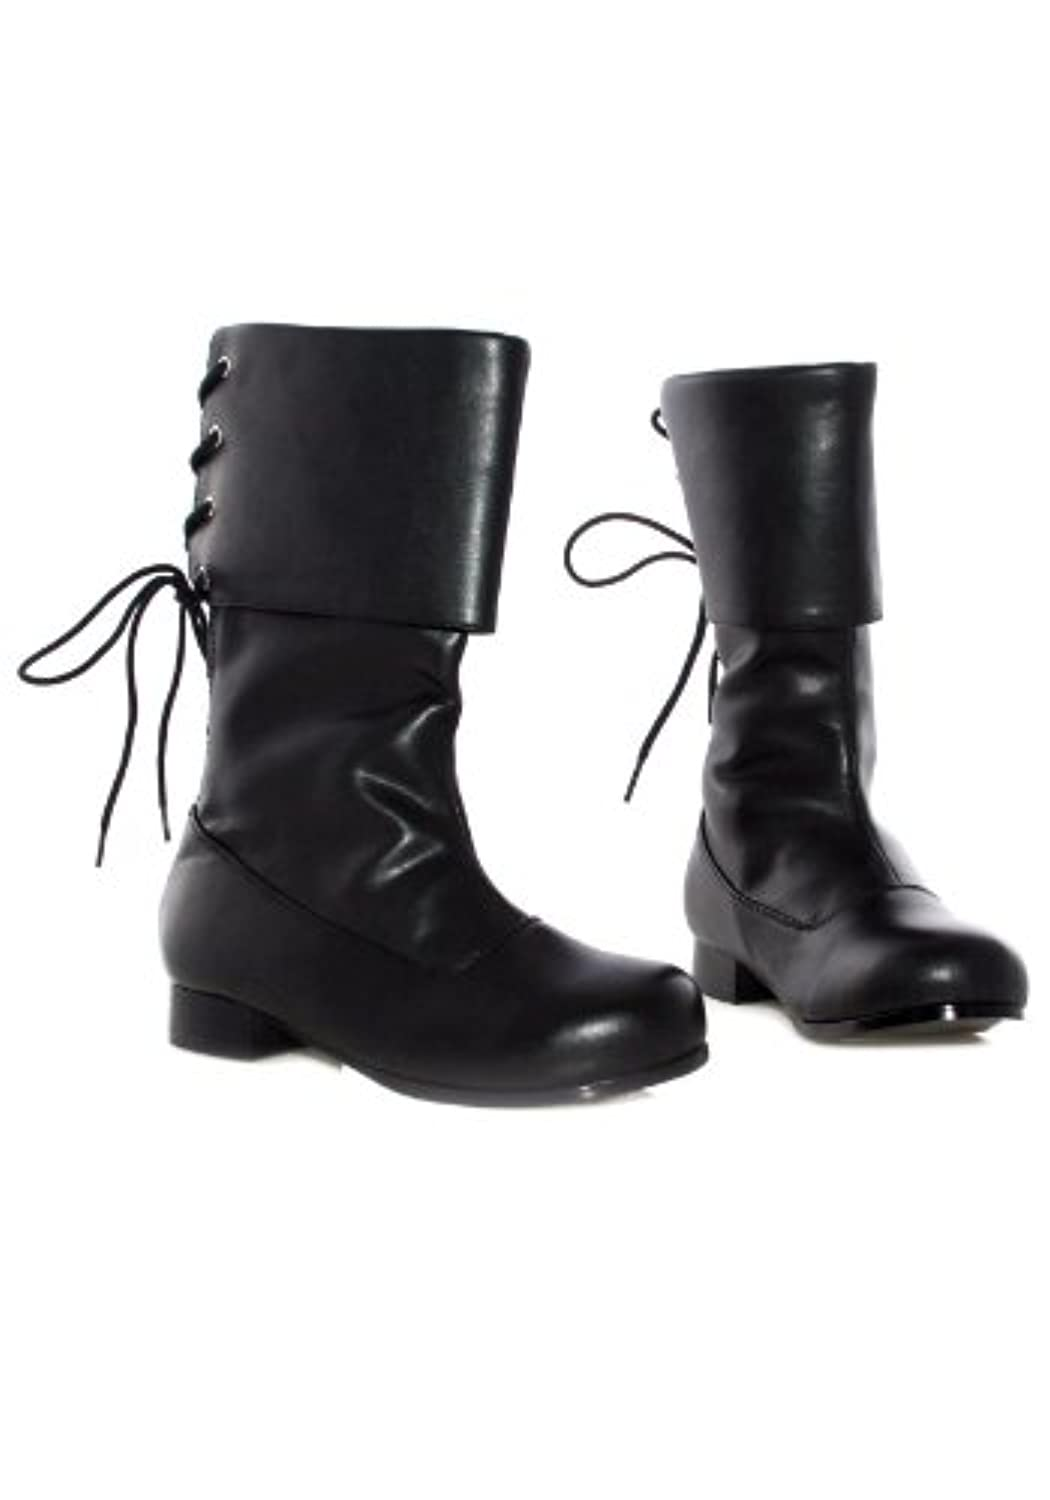 Ellie Shoes PL3409BK-S Black Buccaneer Boot Child SMALL